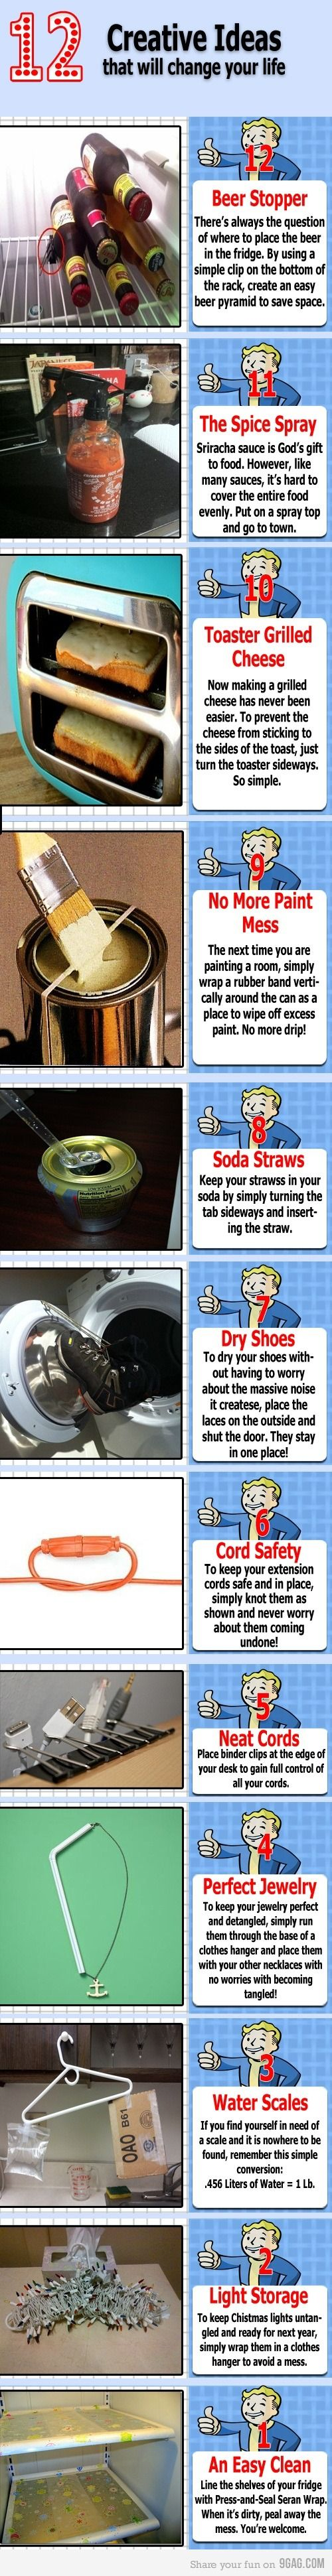 These are all genius ideas.